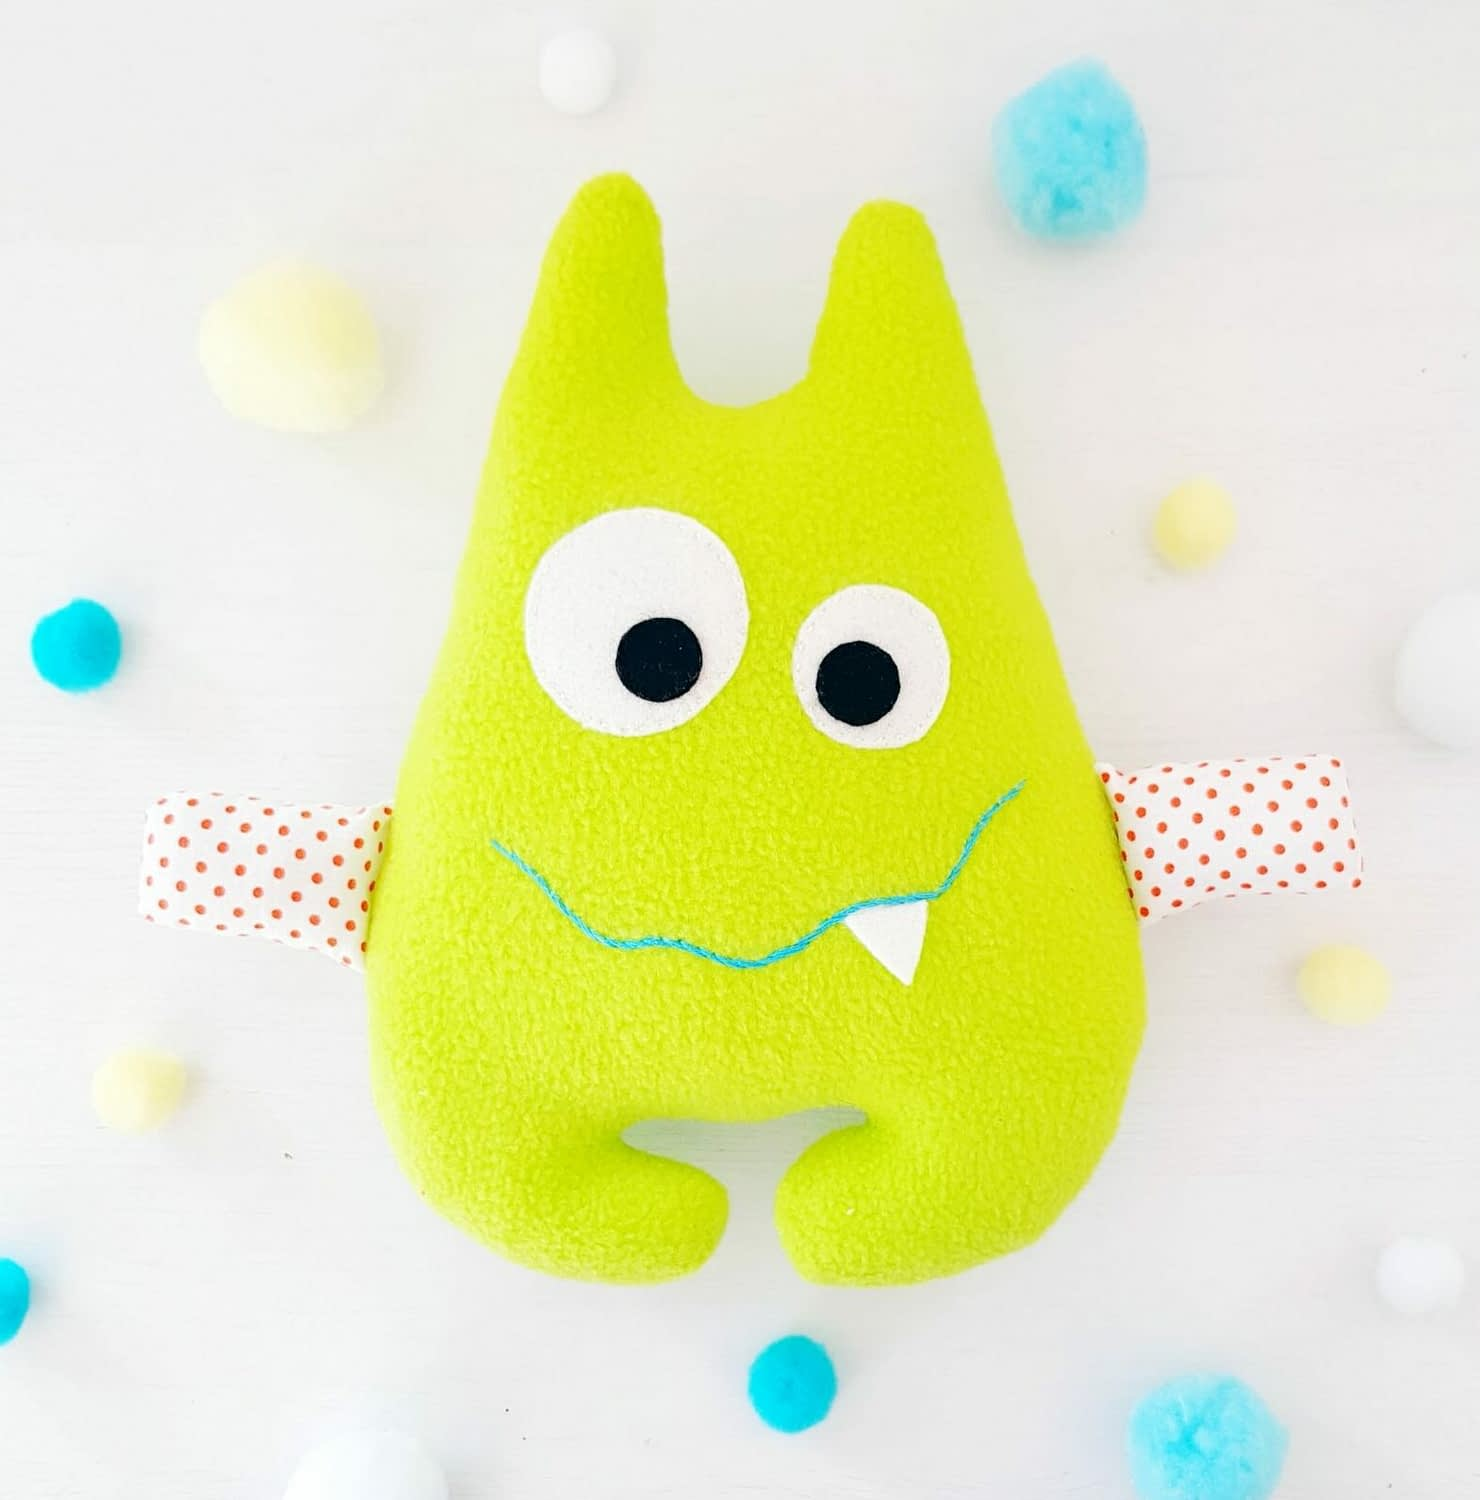 New in the shop - Cute monster sewing pattern for soft toys - beginner